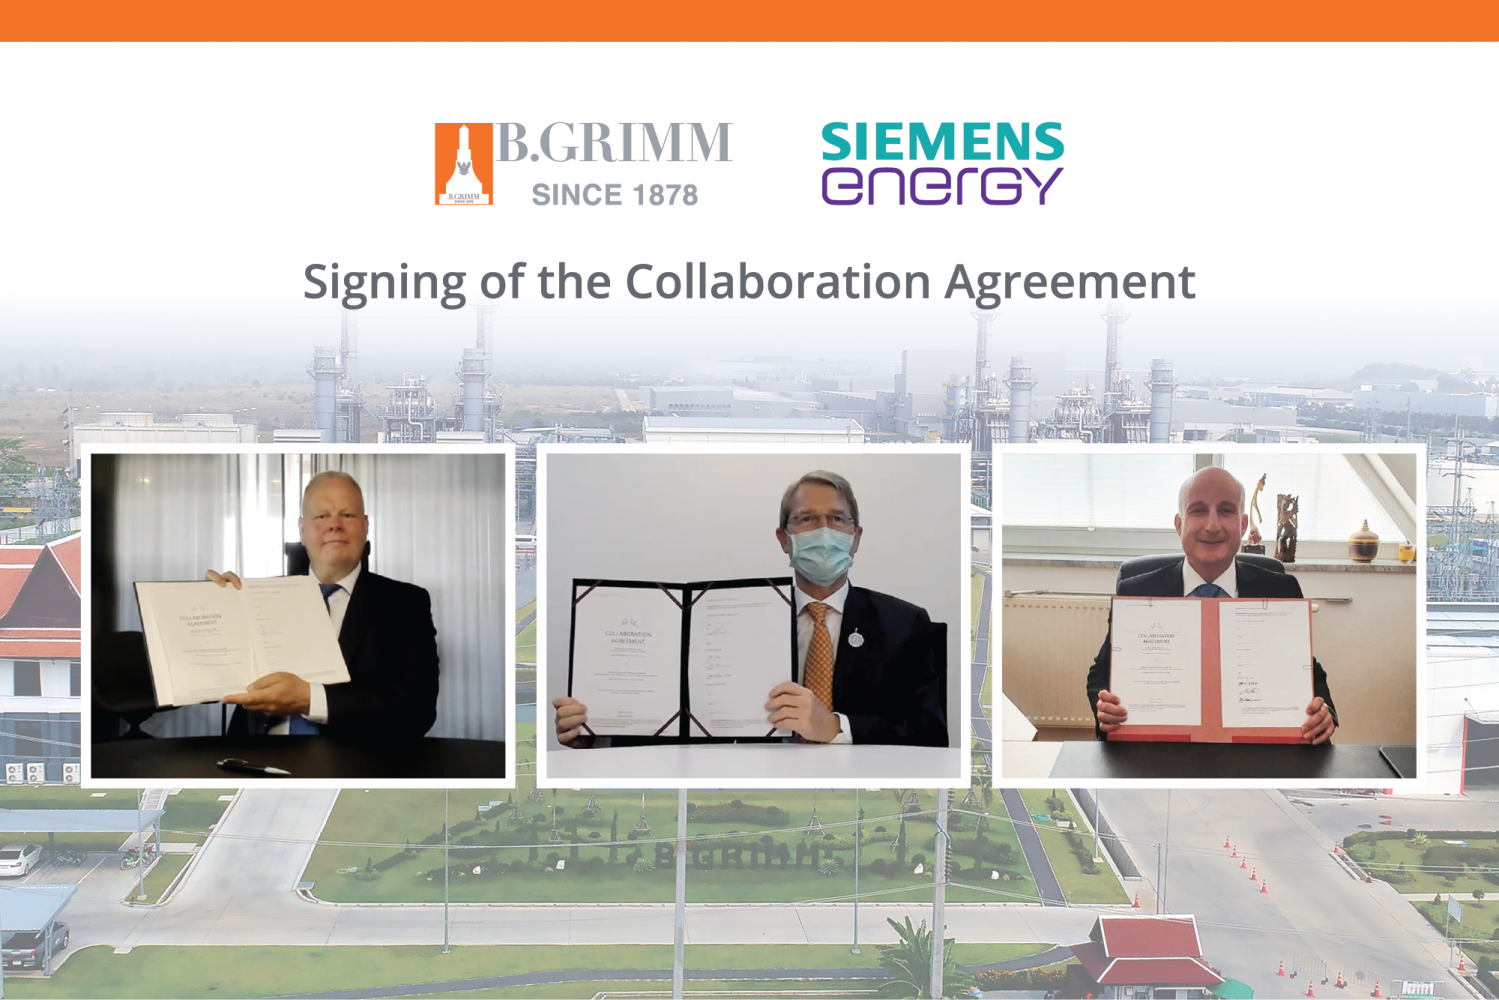 From left are Mr Fors, Mr Link, and Mr Lorenzini at the virtual signing of the collaboration agreement between B.Grimm Power Plc and Siemens Energy.